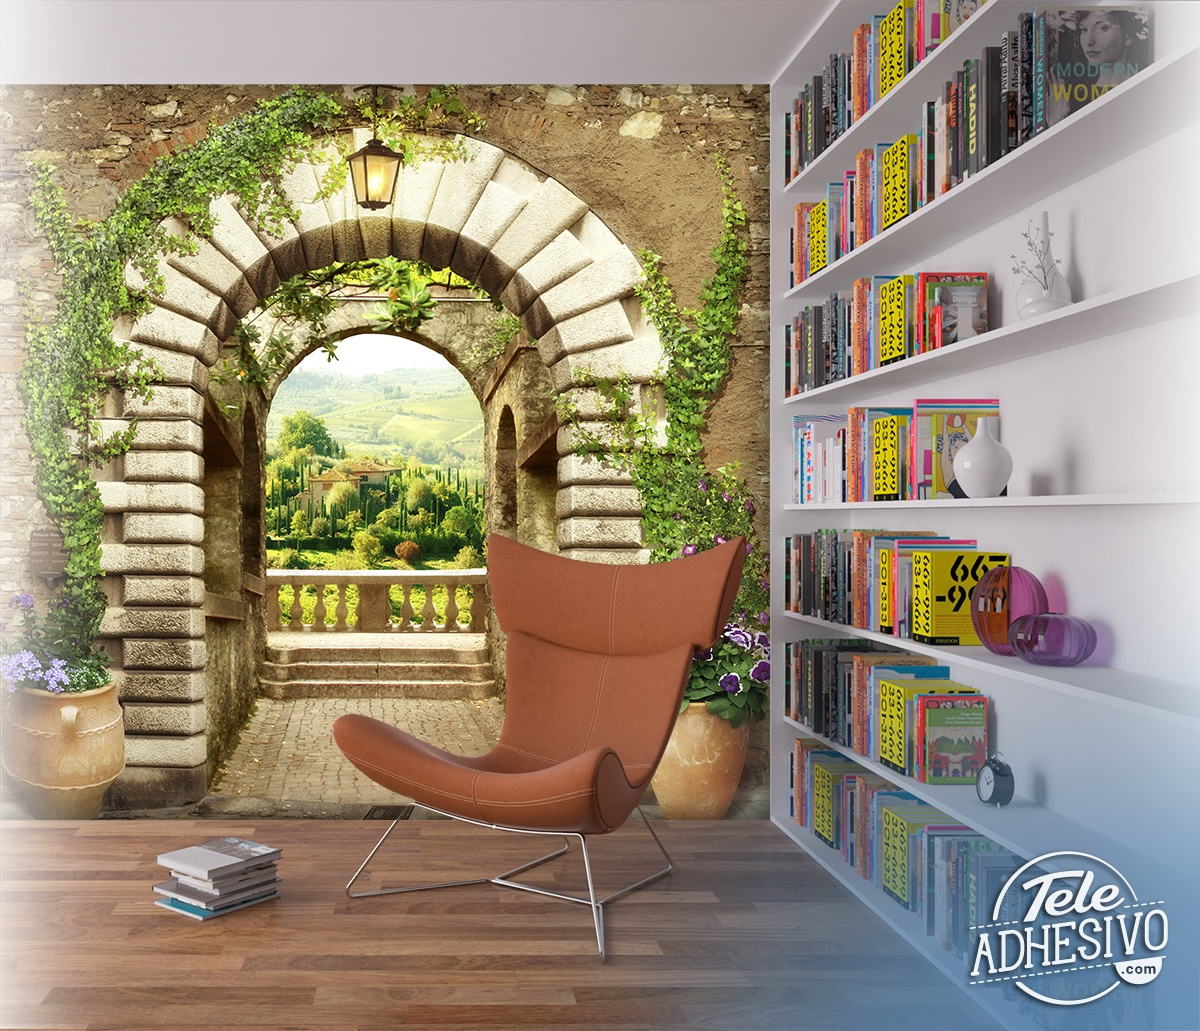 Wall Murals: Great door to the viewpoint